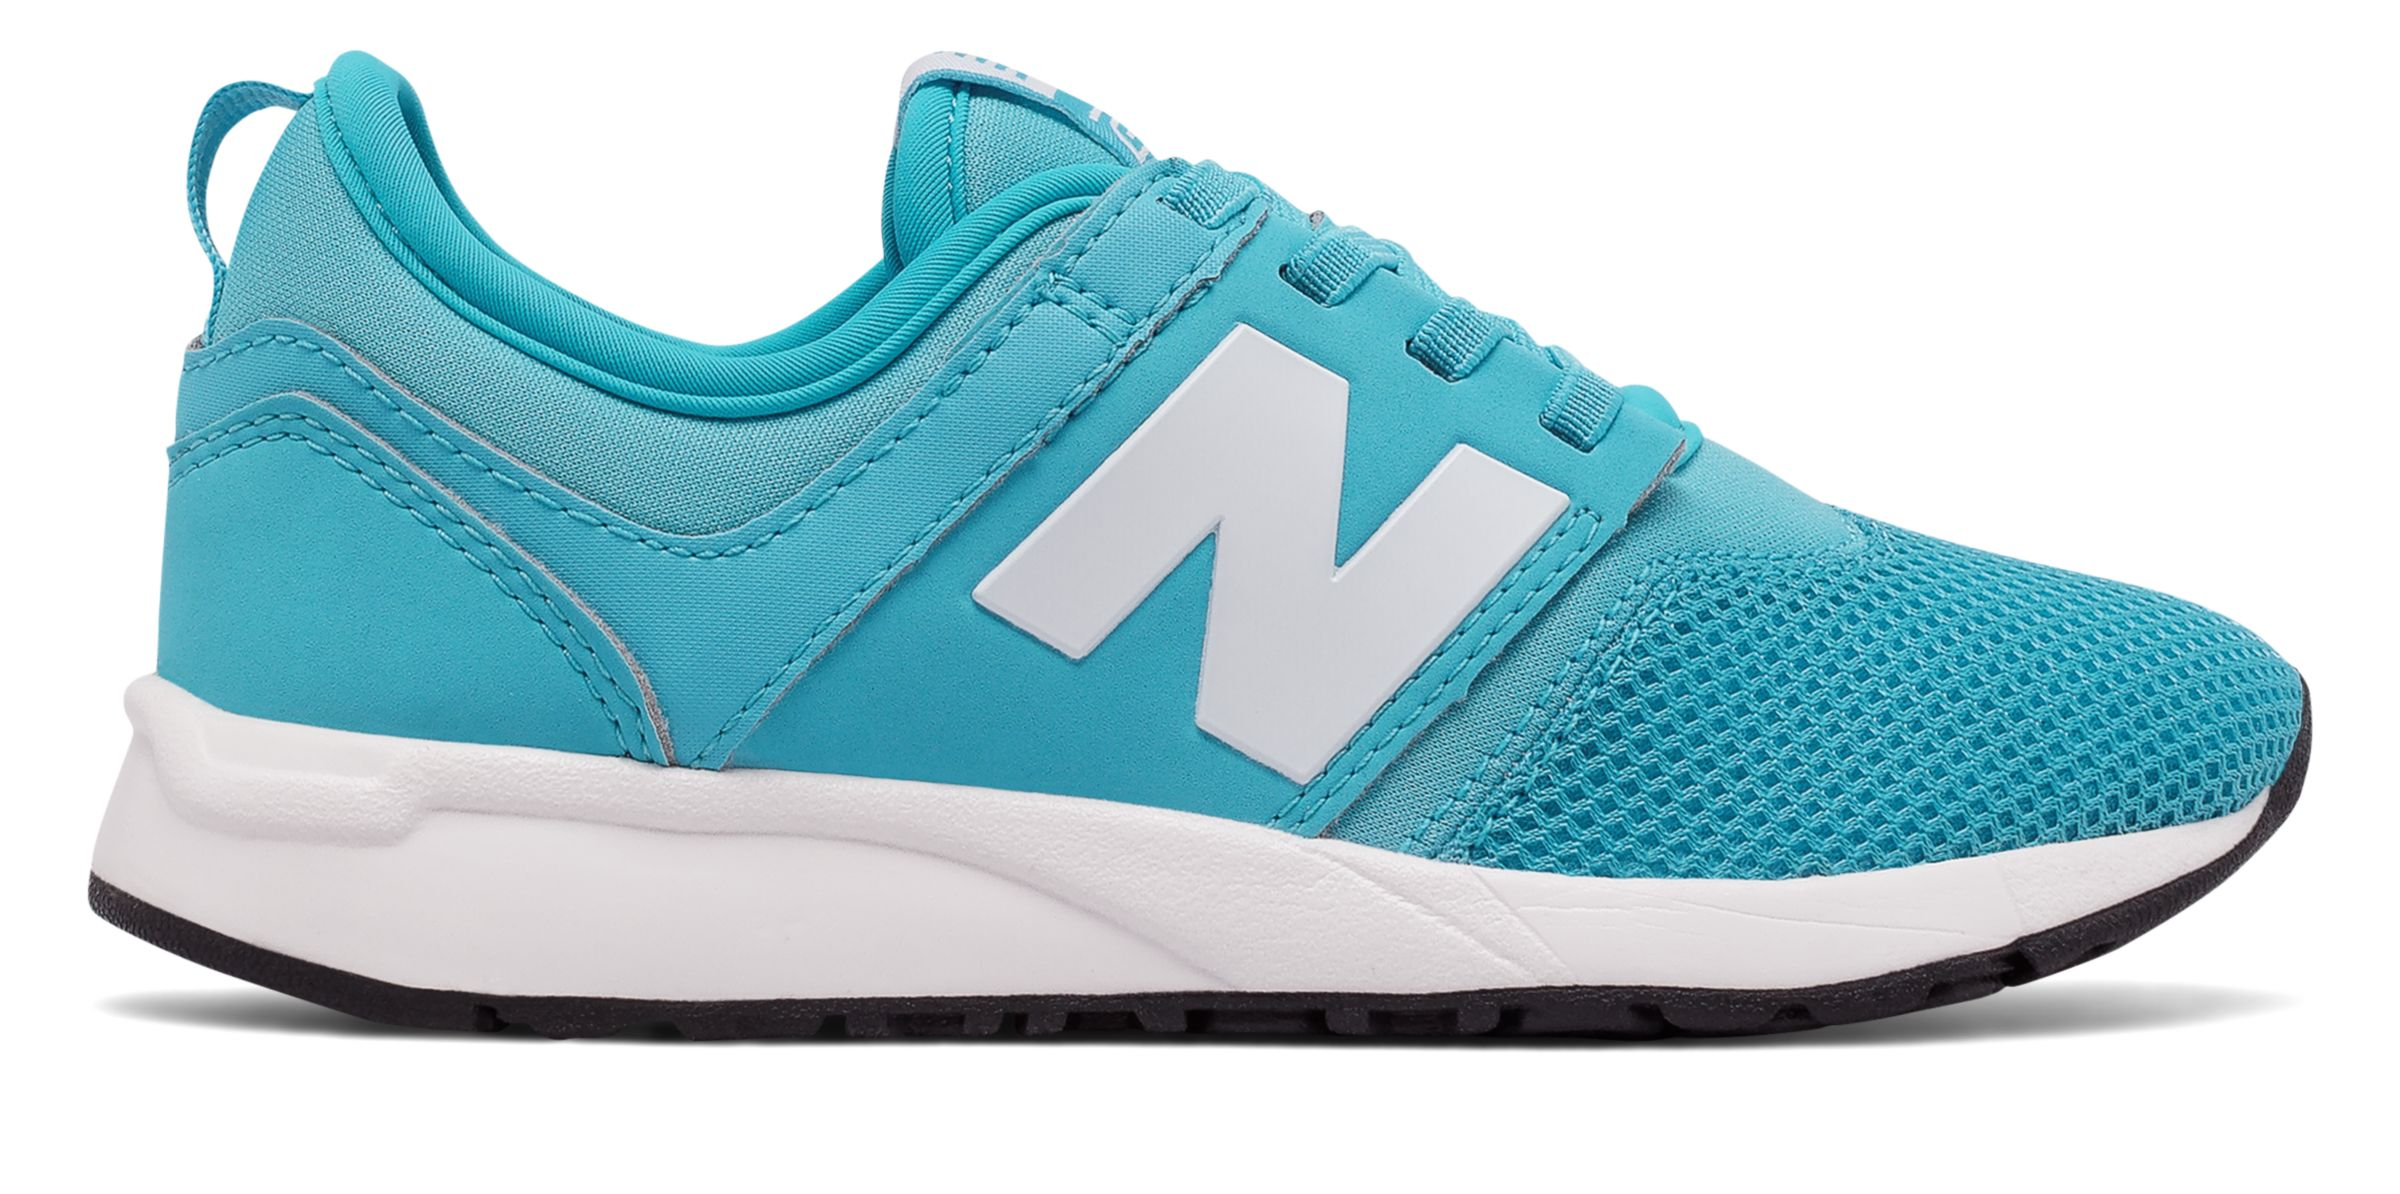 NB 247 New Balance, Light Blue with White